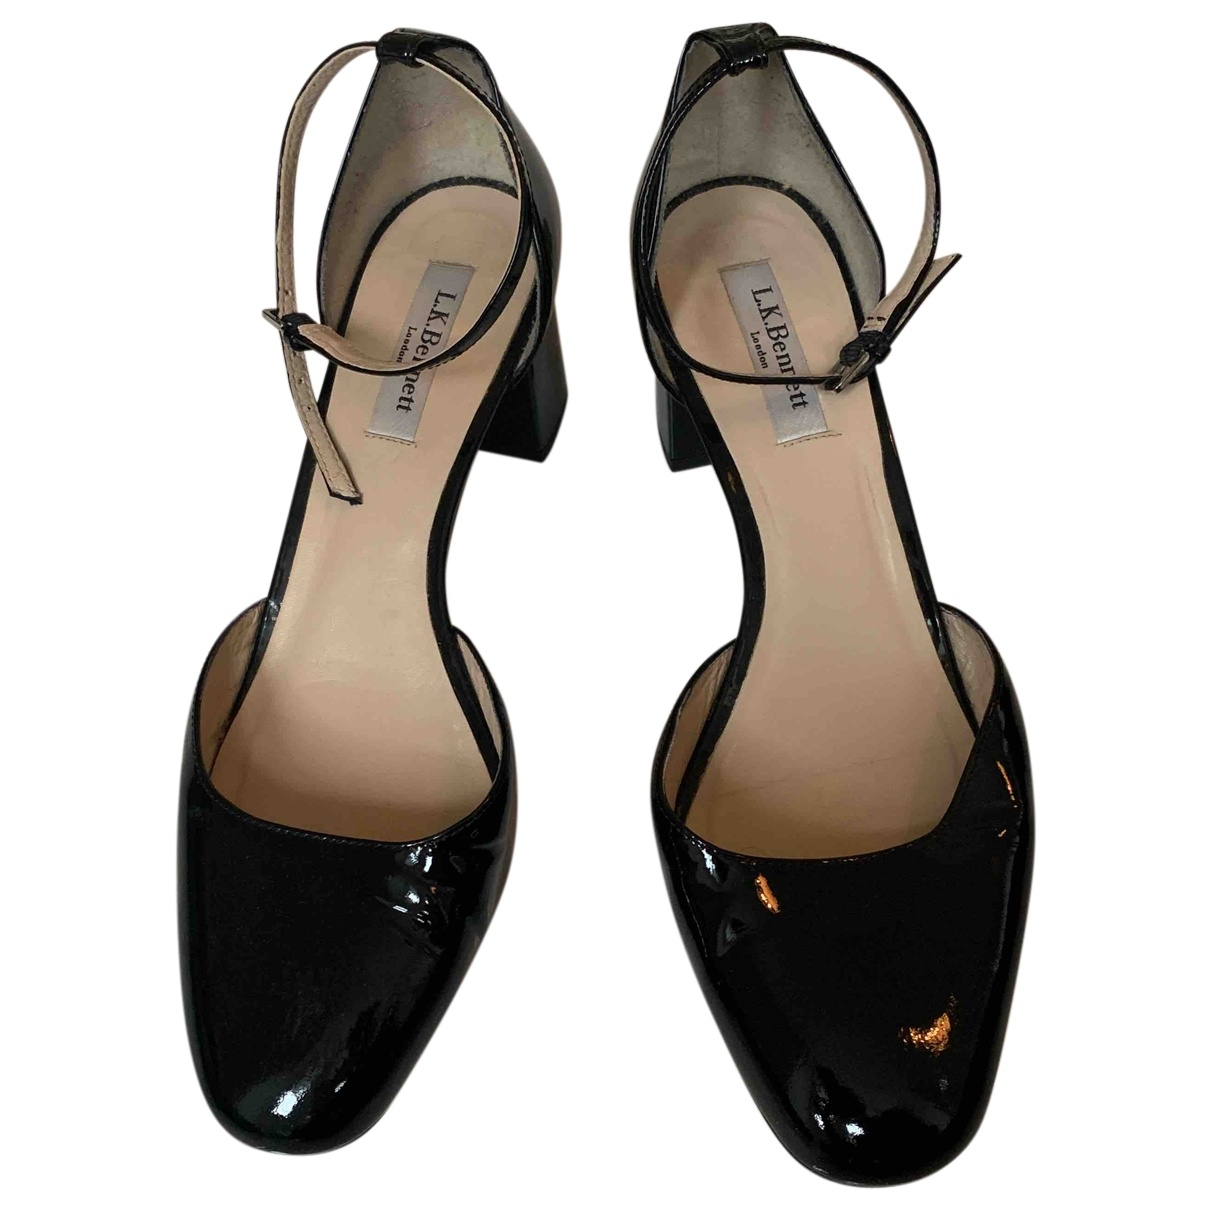 Lk Bennett \N Black Patent leather Heels for Women 41 EU